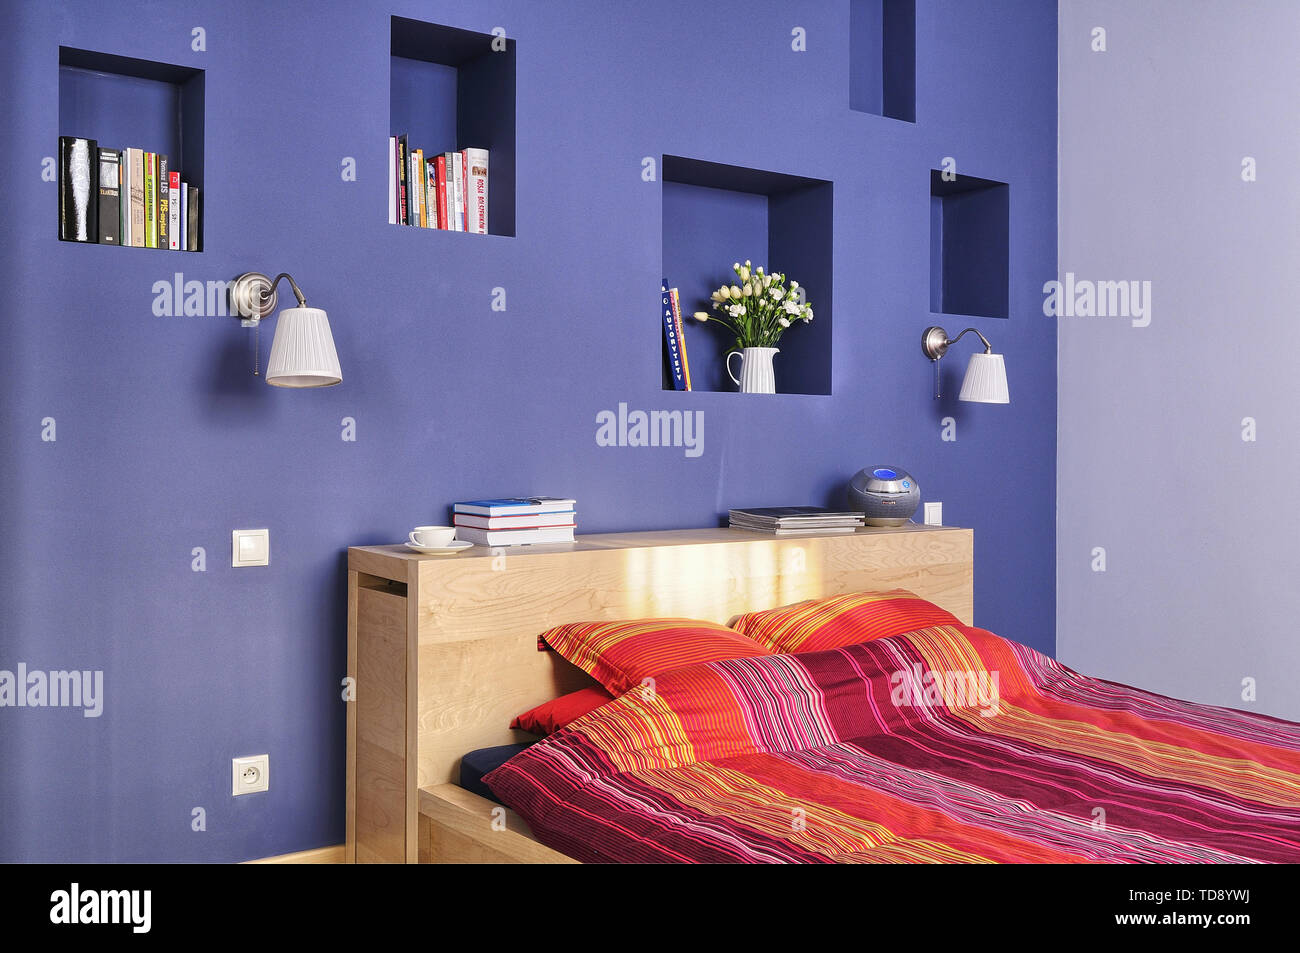 Recessed wall shelves above double bed with striped pattern bed linen in modern bedroom    UK AND IRISH RIGHTS ONLY - Stock Image